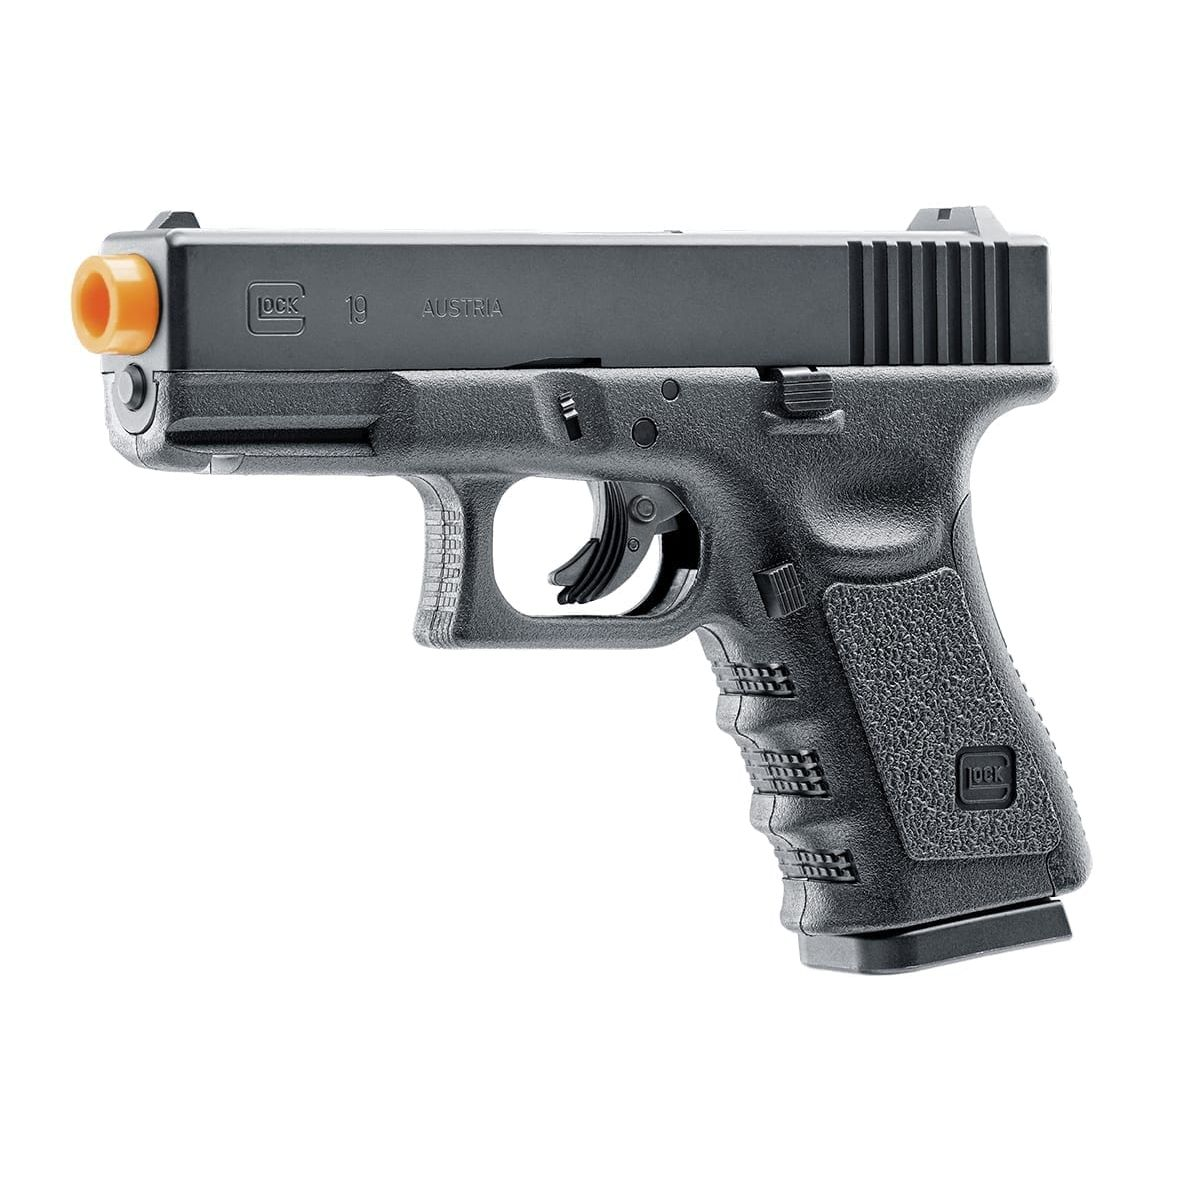 GLOCK G19 GEN 3 CO2 AIRSOFT PISTOL NBB